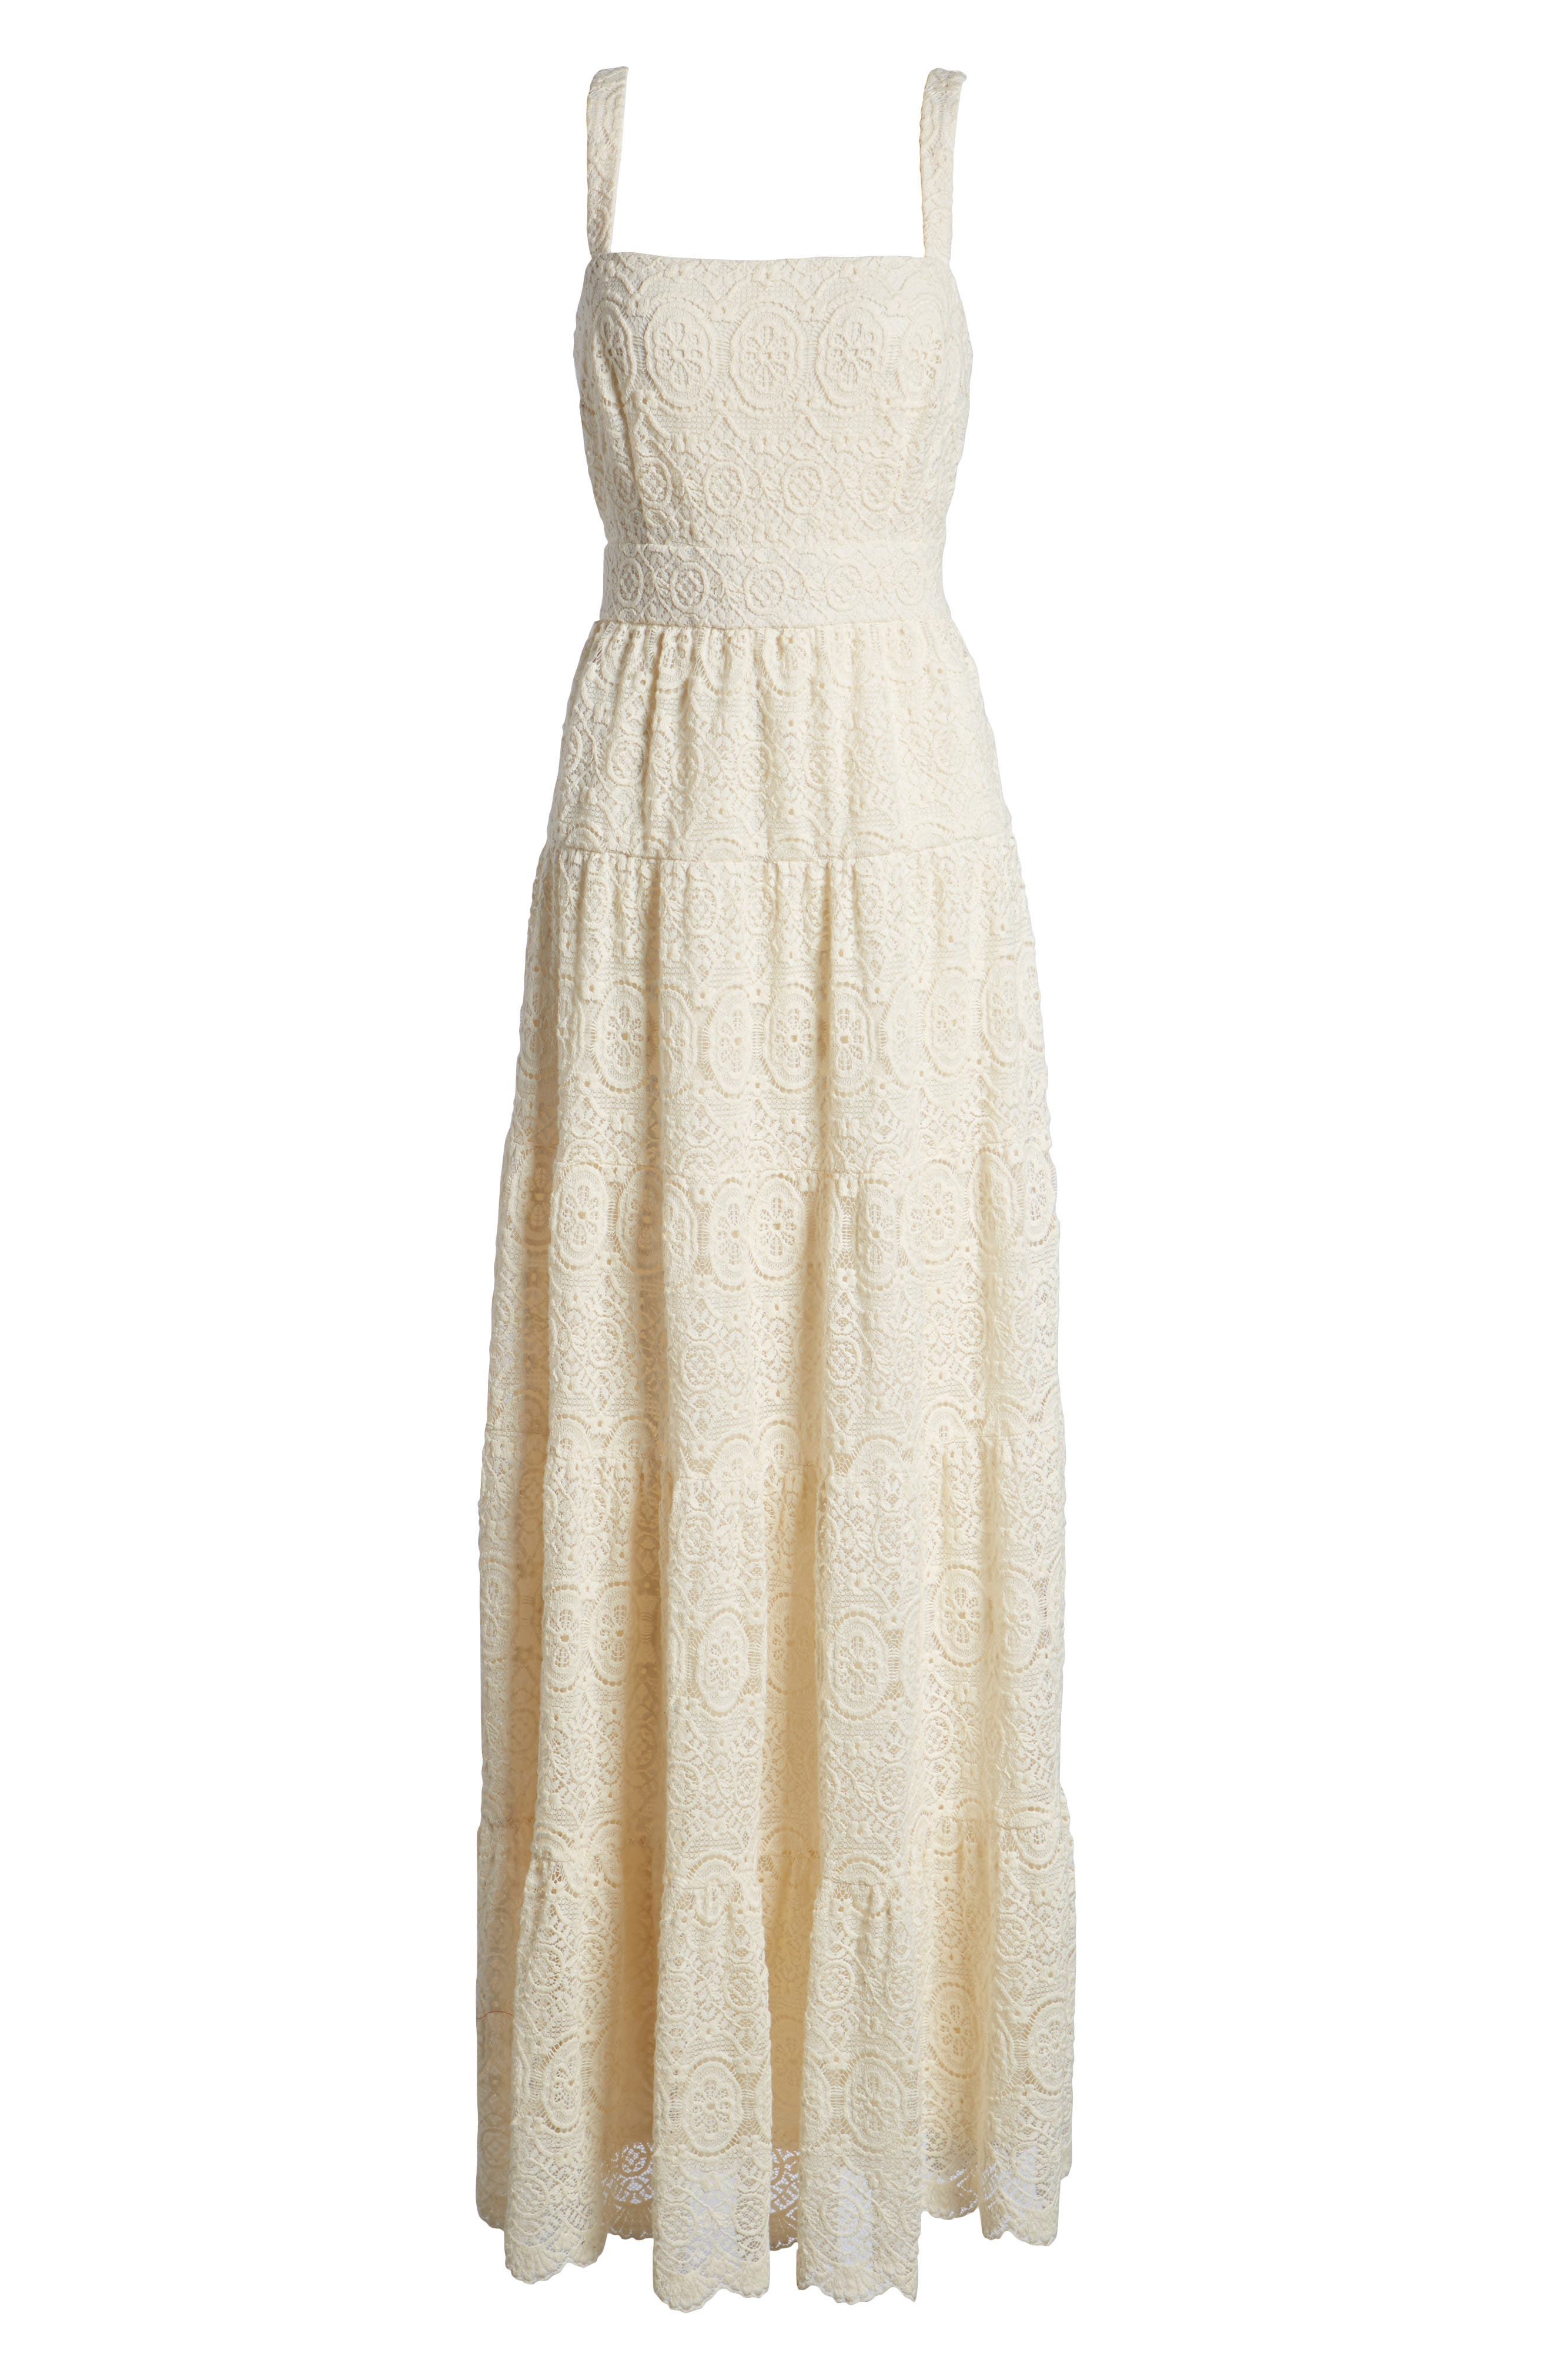 Tiered Lace Maxi Dress,                             Alternate thumbnail 7, color,                             900